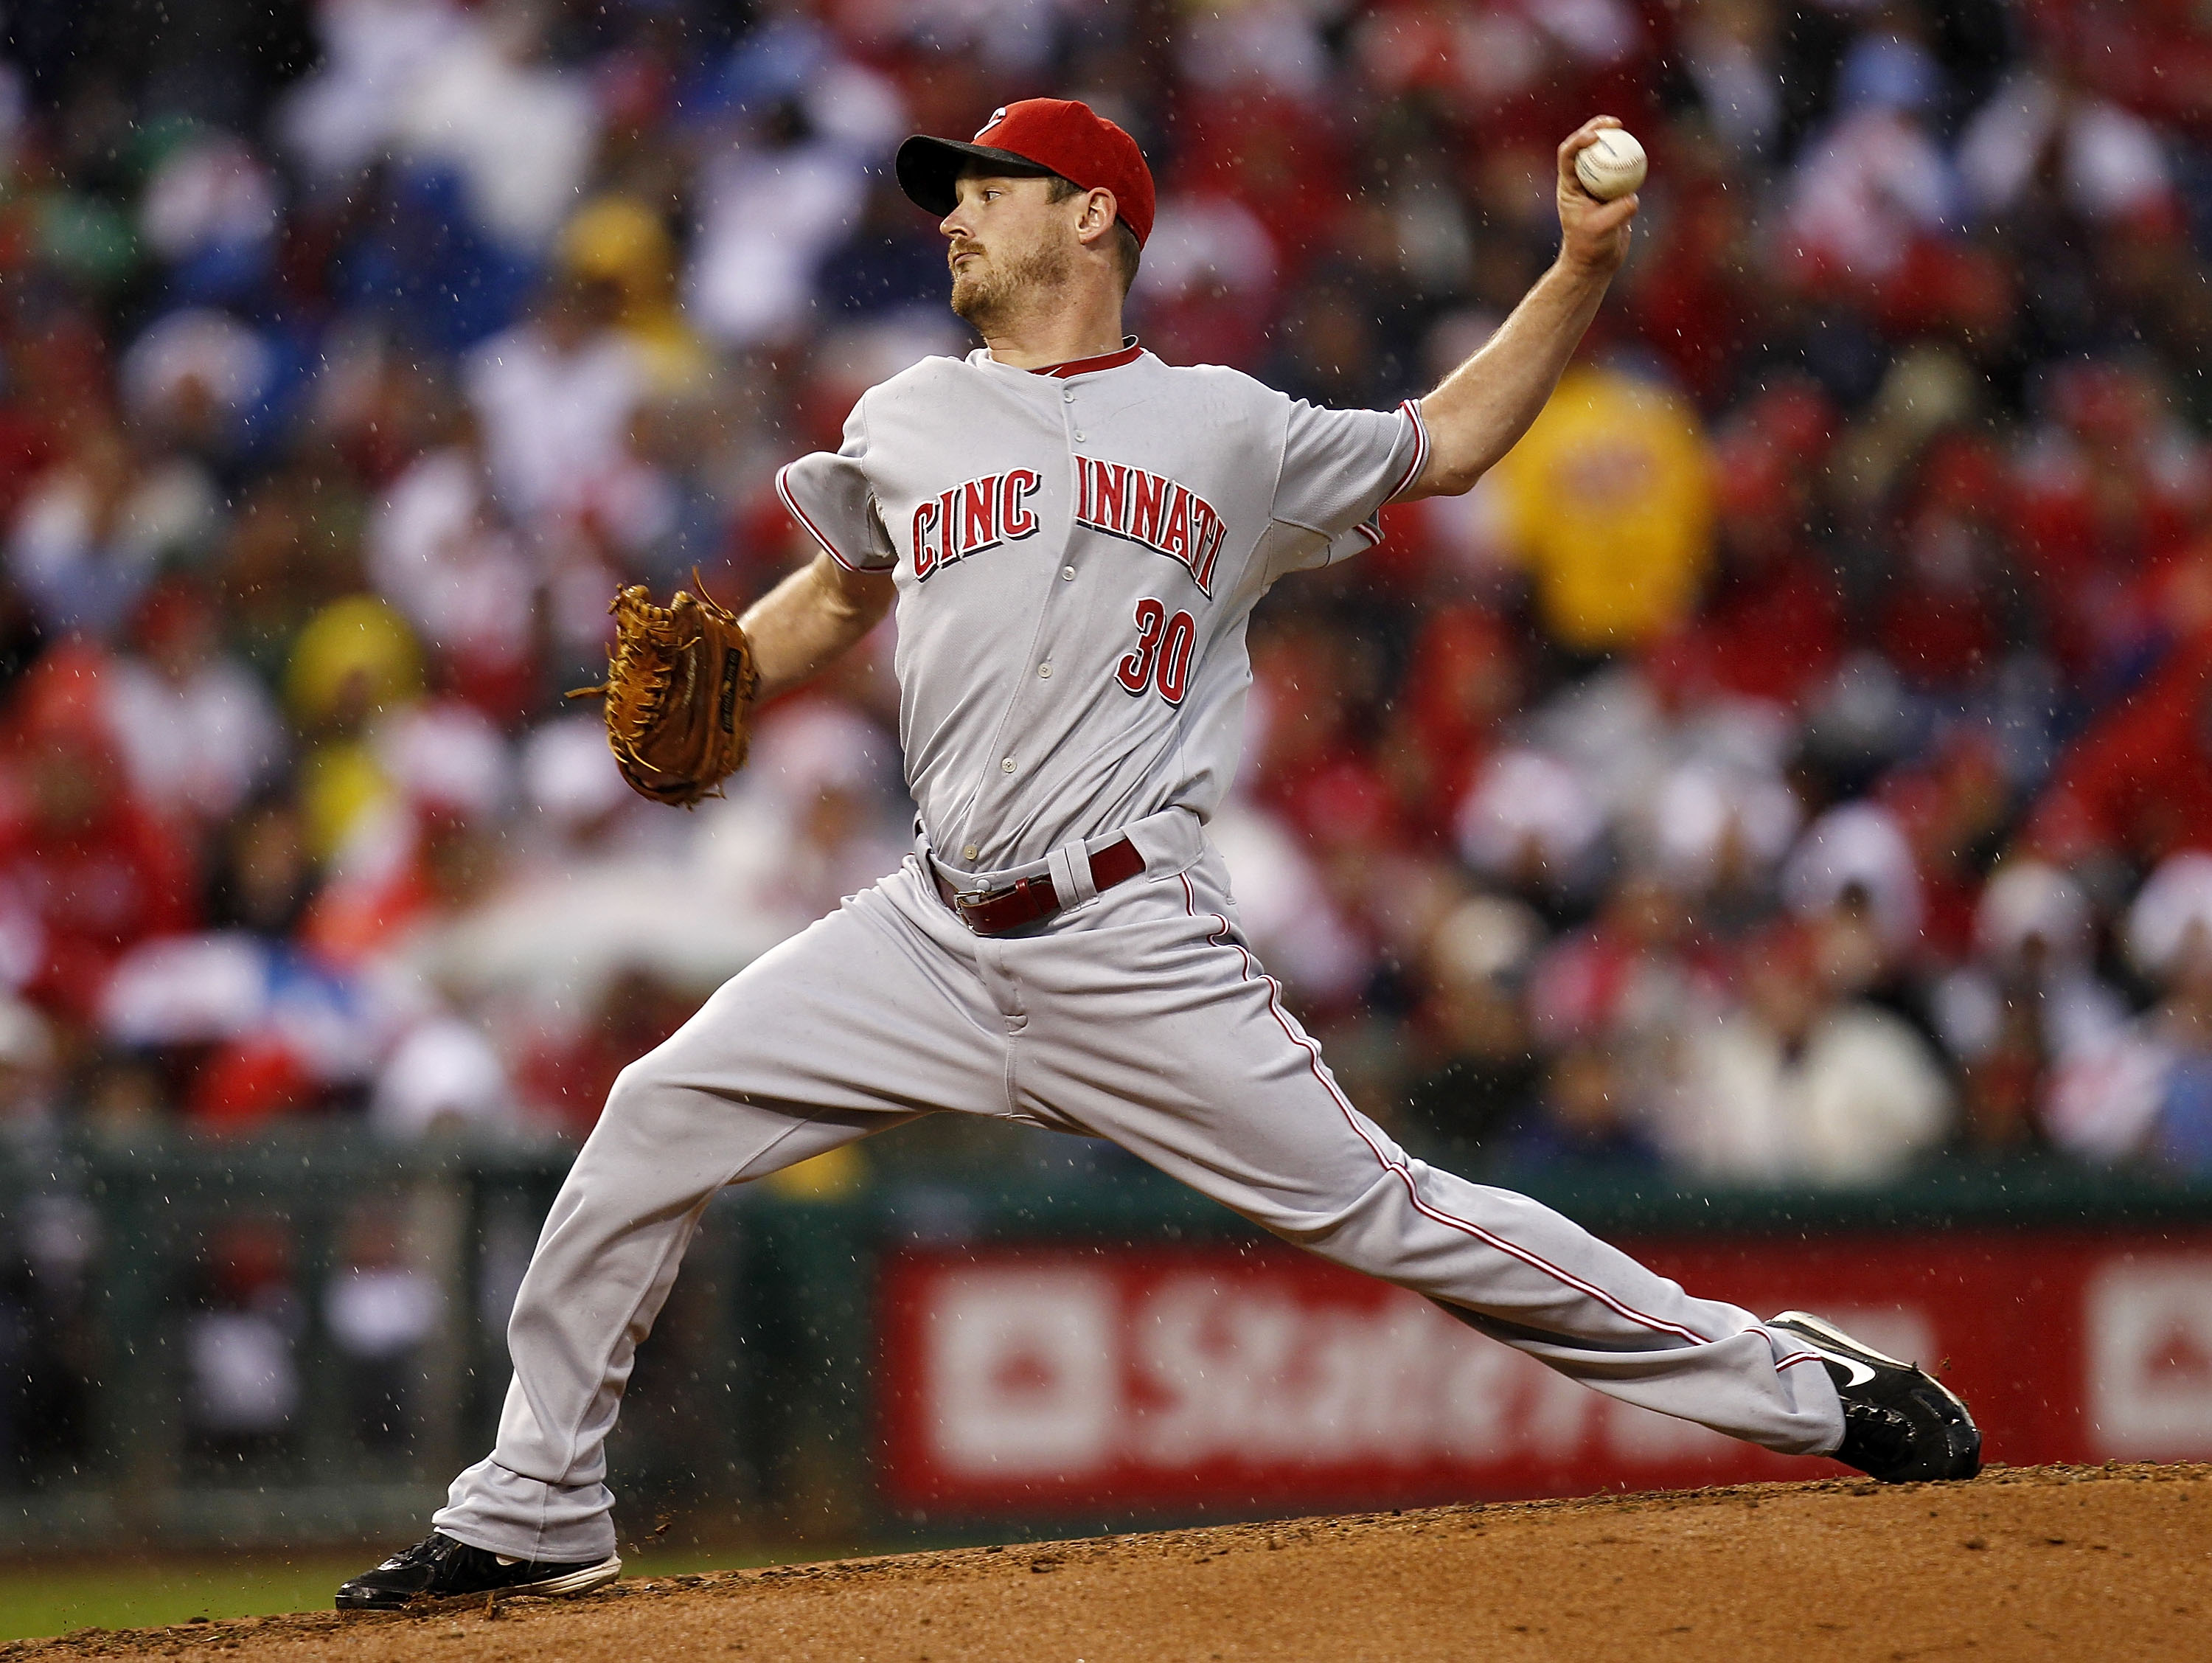 PHILADELPHIA - OCTOBER 06:  Travis Wood #30 of the Cincinnati Reds delivers in Game 1 of the NLDS against the Philadelphia Phillies at Citizens Bank Park on October 6, 2010 in Philadelphia, Pennsylvania.  (Photo by Jeff Zelevansky/Getty Images)